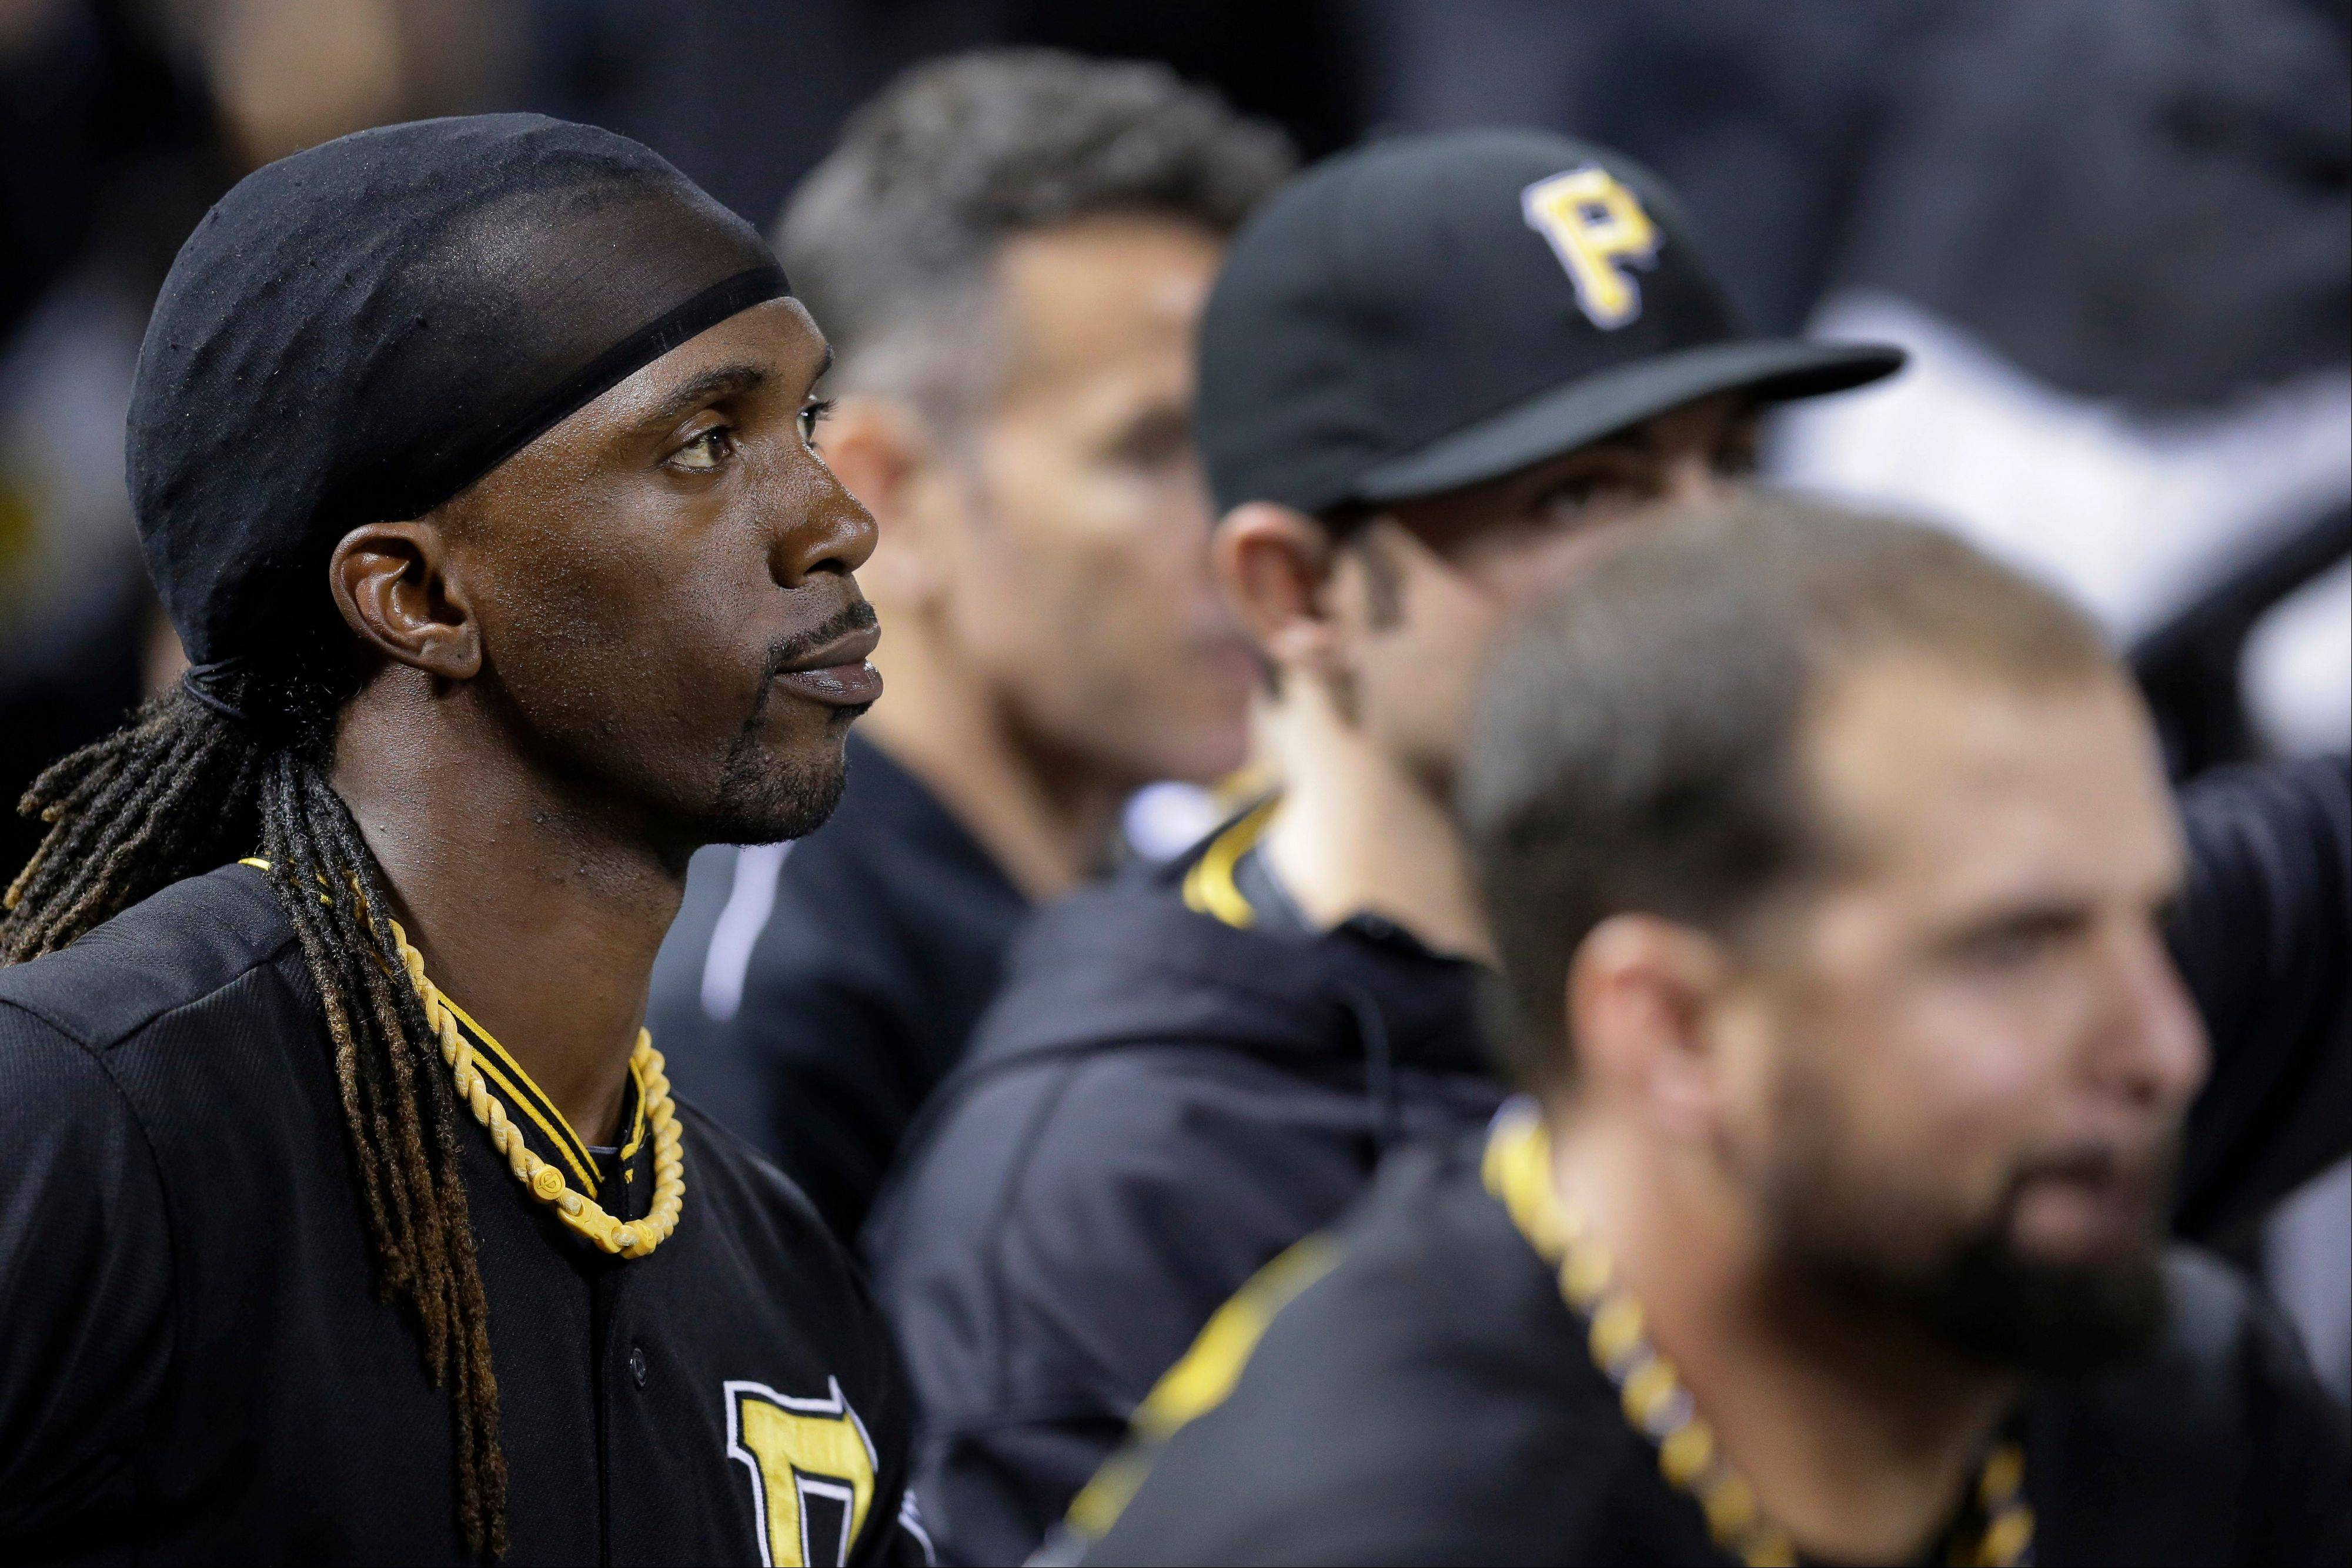 The Pirates� Andrew McCutchen, left, and his teammates watch from the dugout during the eighth inning of Game 5 of a National League Division Series against the Cardinals in St. Louis. The Cardinals won 6-1 and advanced to the NL championship series against the Los Angeles Dodgers.